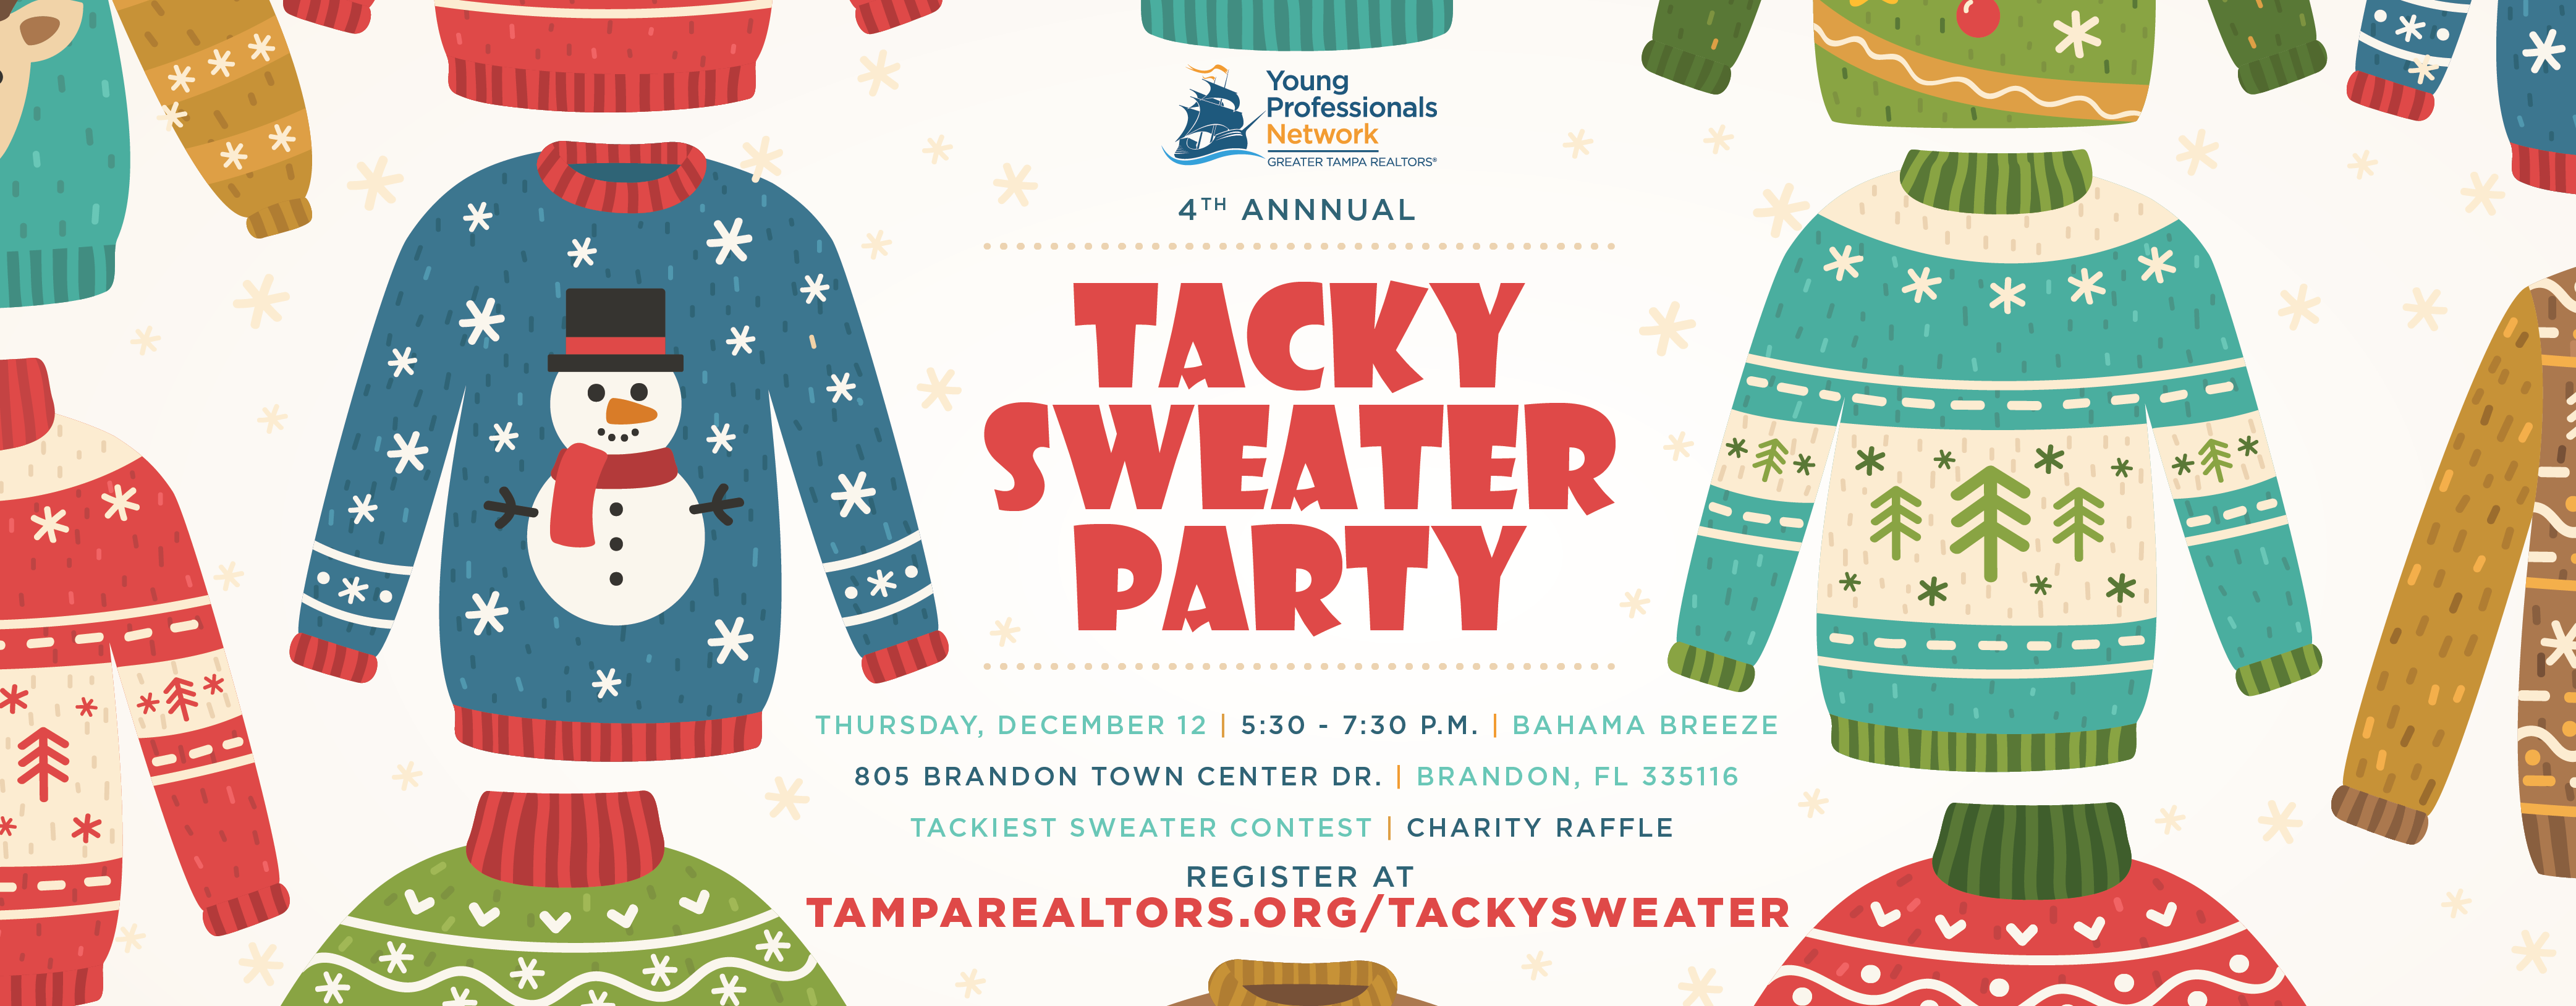 Tacky Sweater Party YPN 2019_4 web slider-07